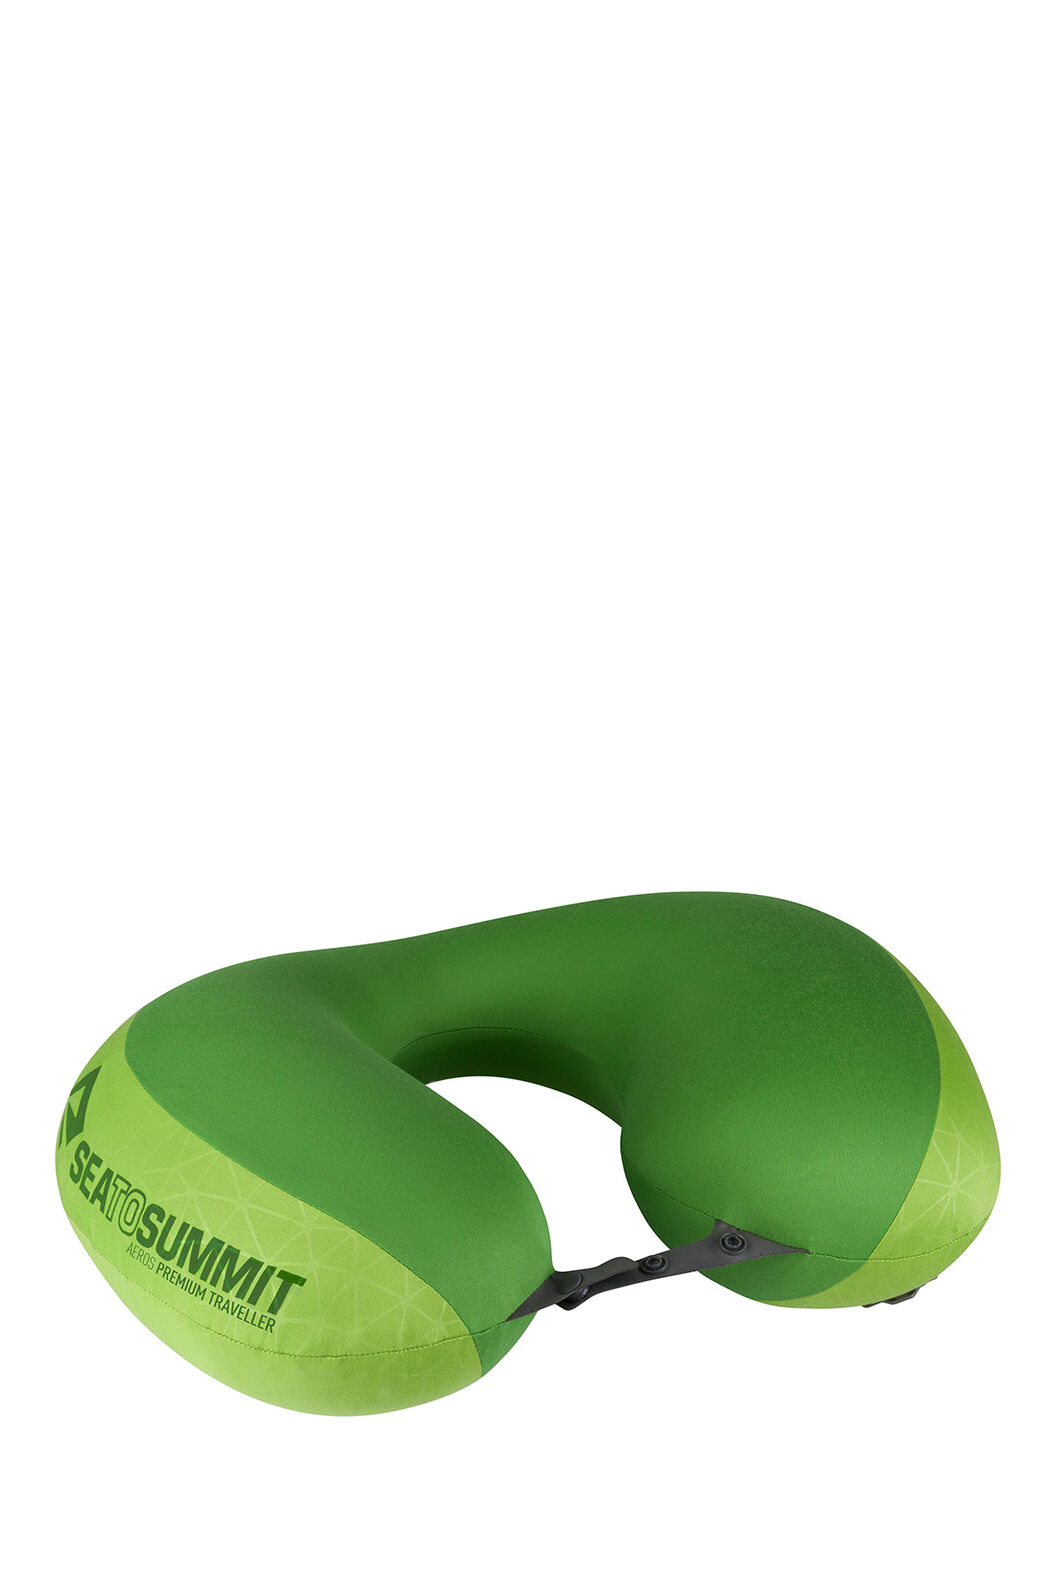 Sea to Summit Aeros Premium Traveller, Lime, hi-res